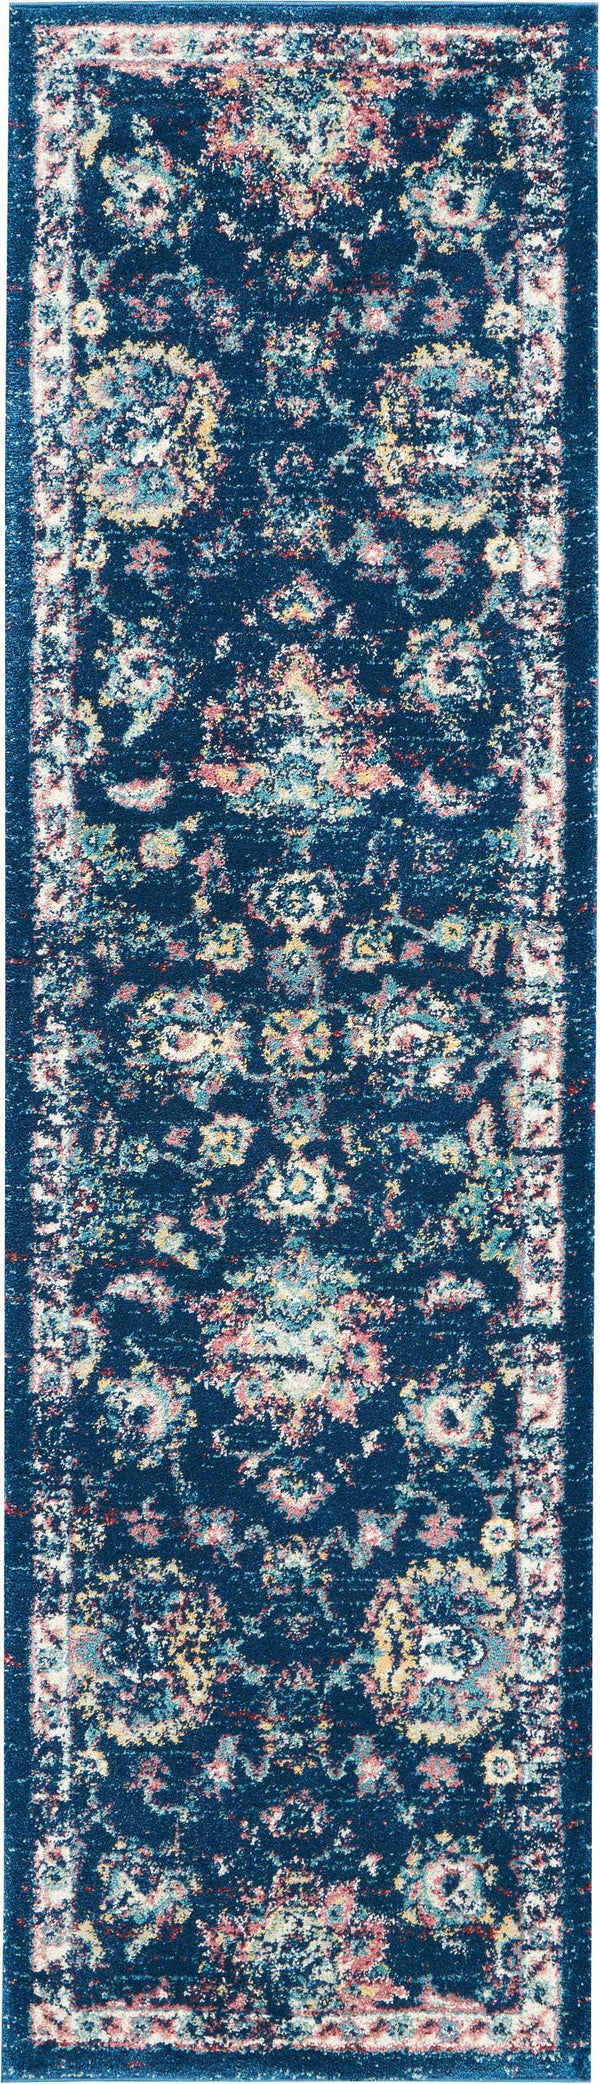 Nourison FUSION FSS15 NAVY/PINK Area Rug